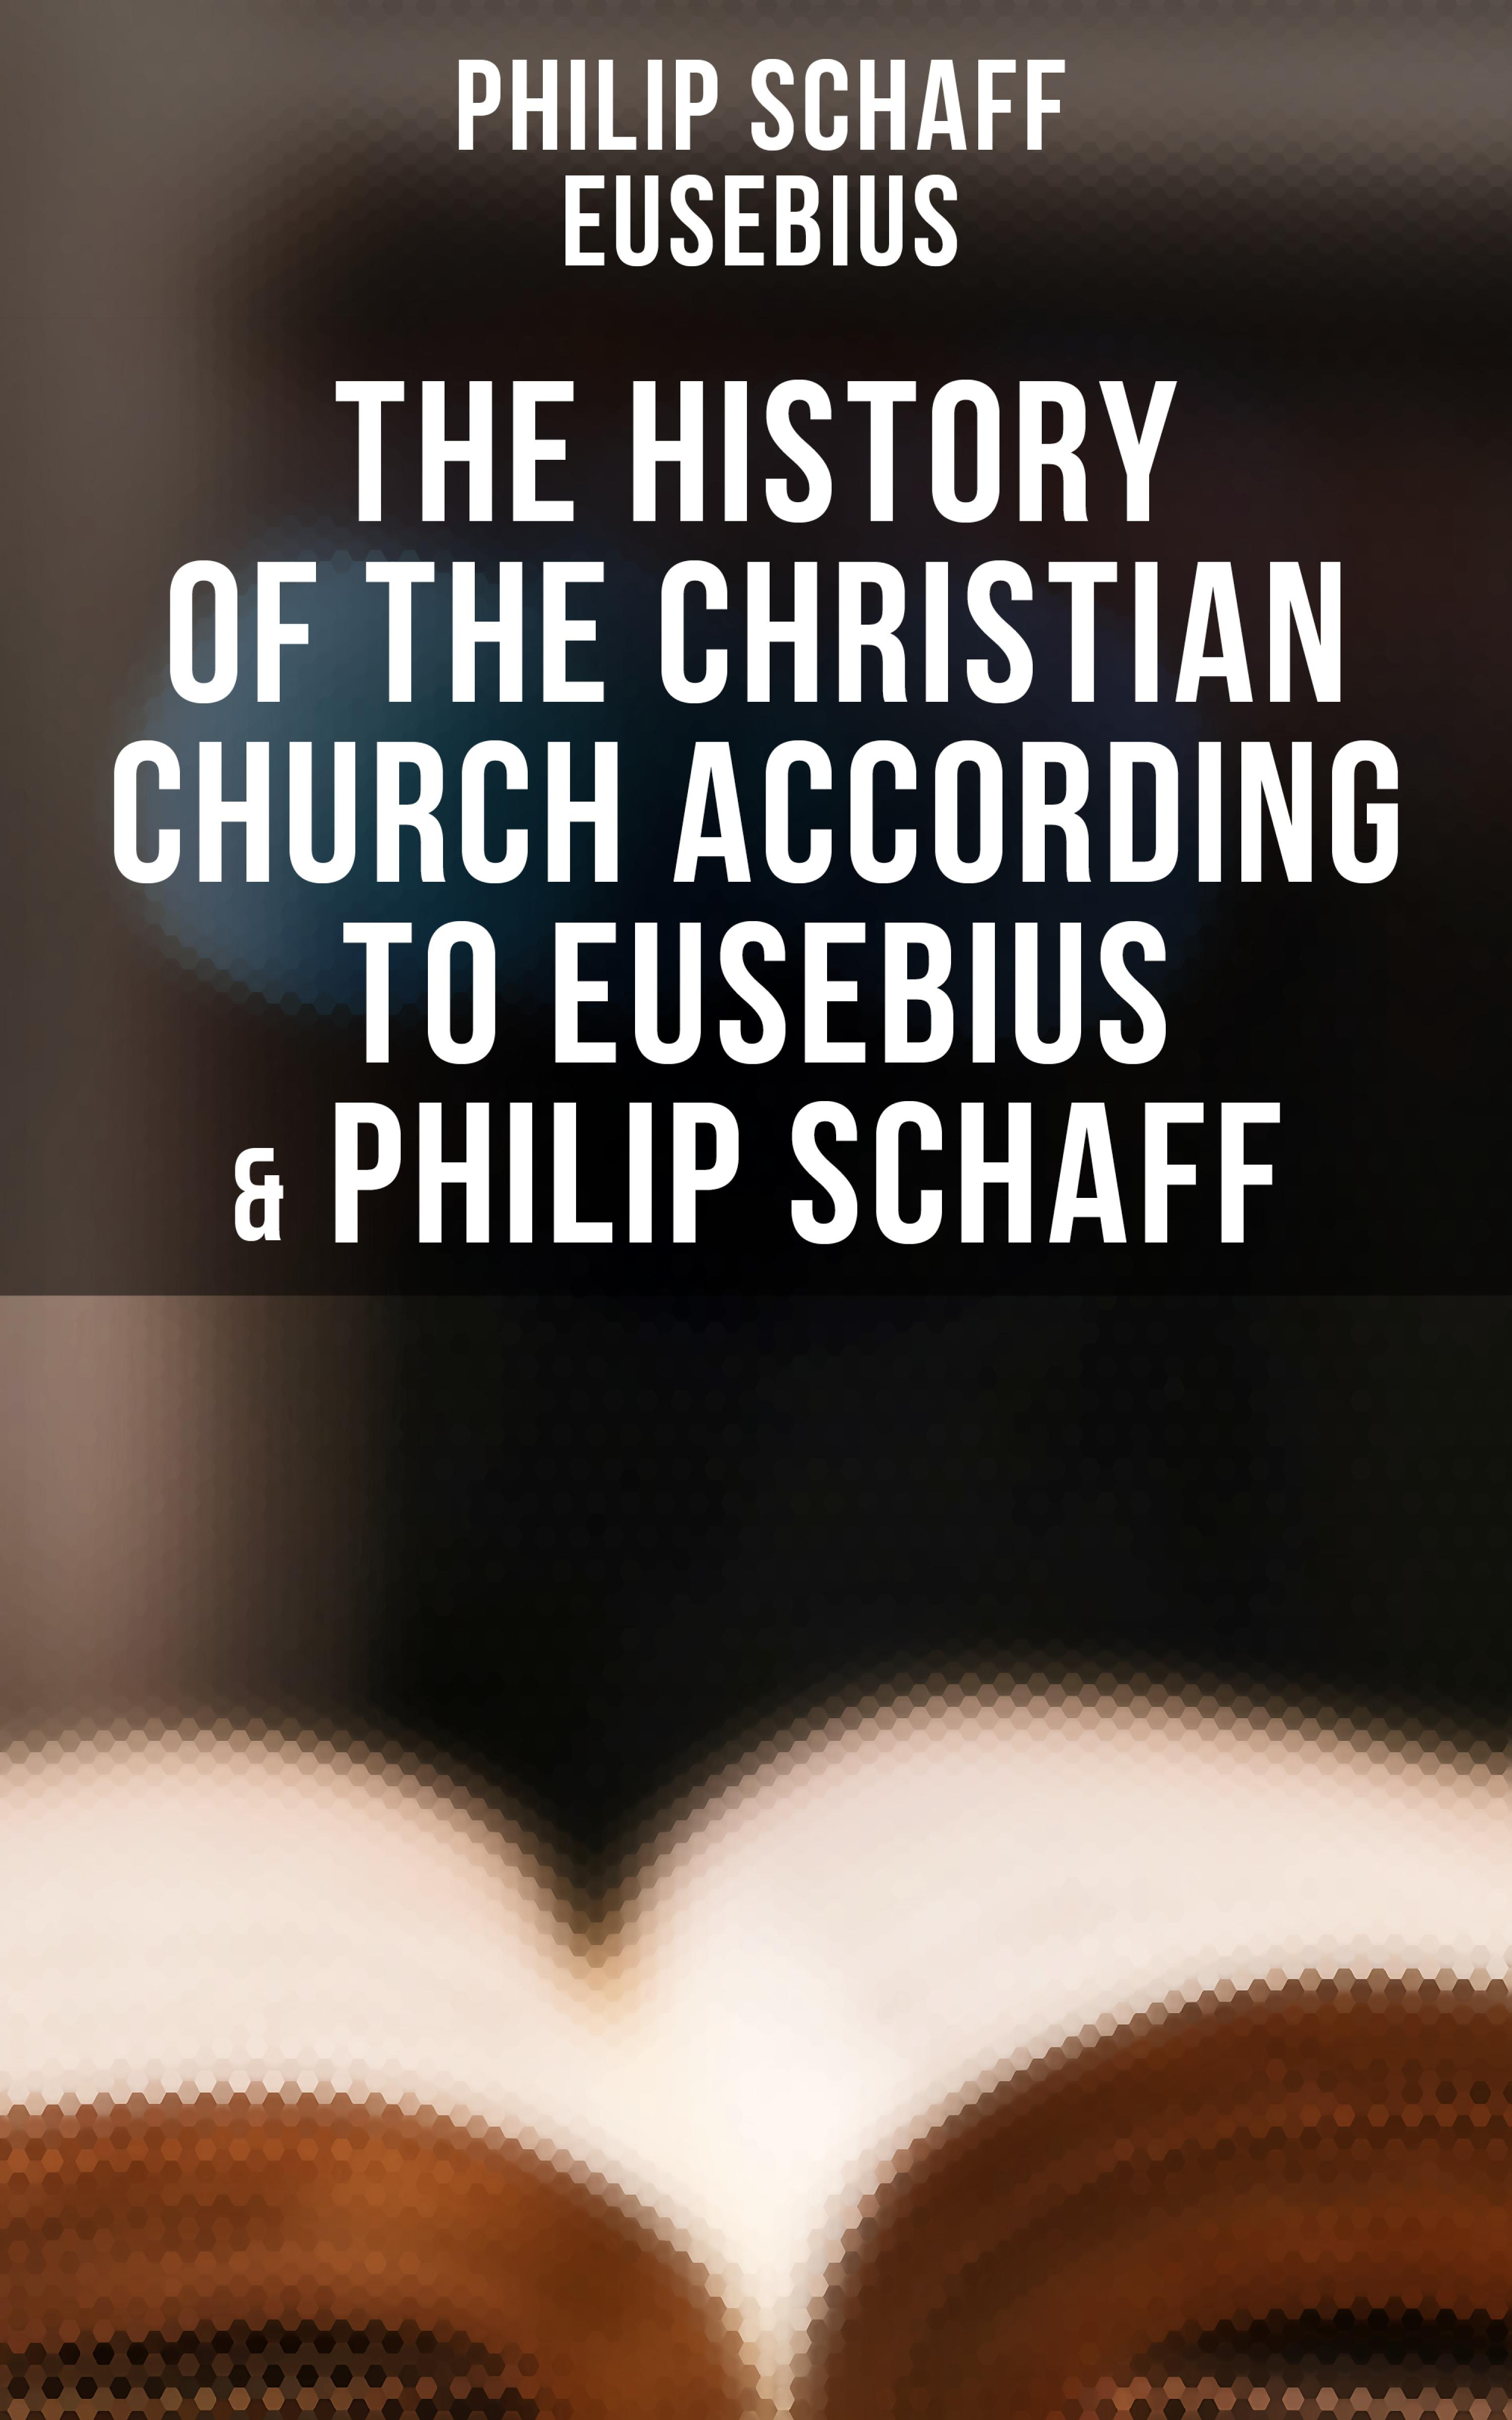 Eusebius The History of the Christian Church According to Eusebius & Philip Schaff thomas schaff in the beginning